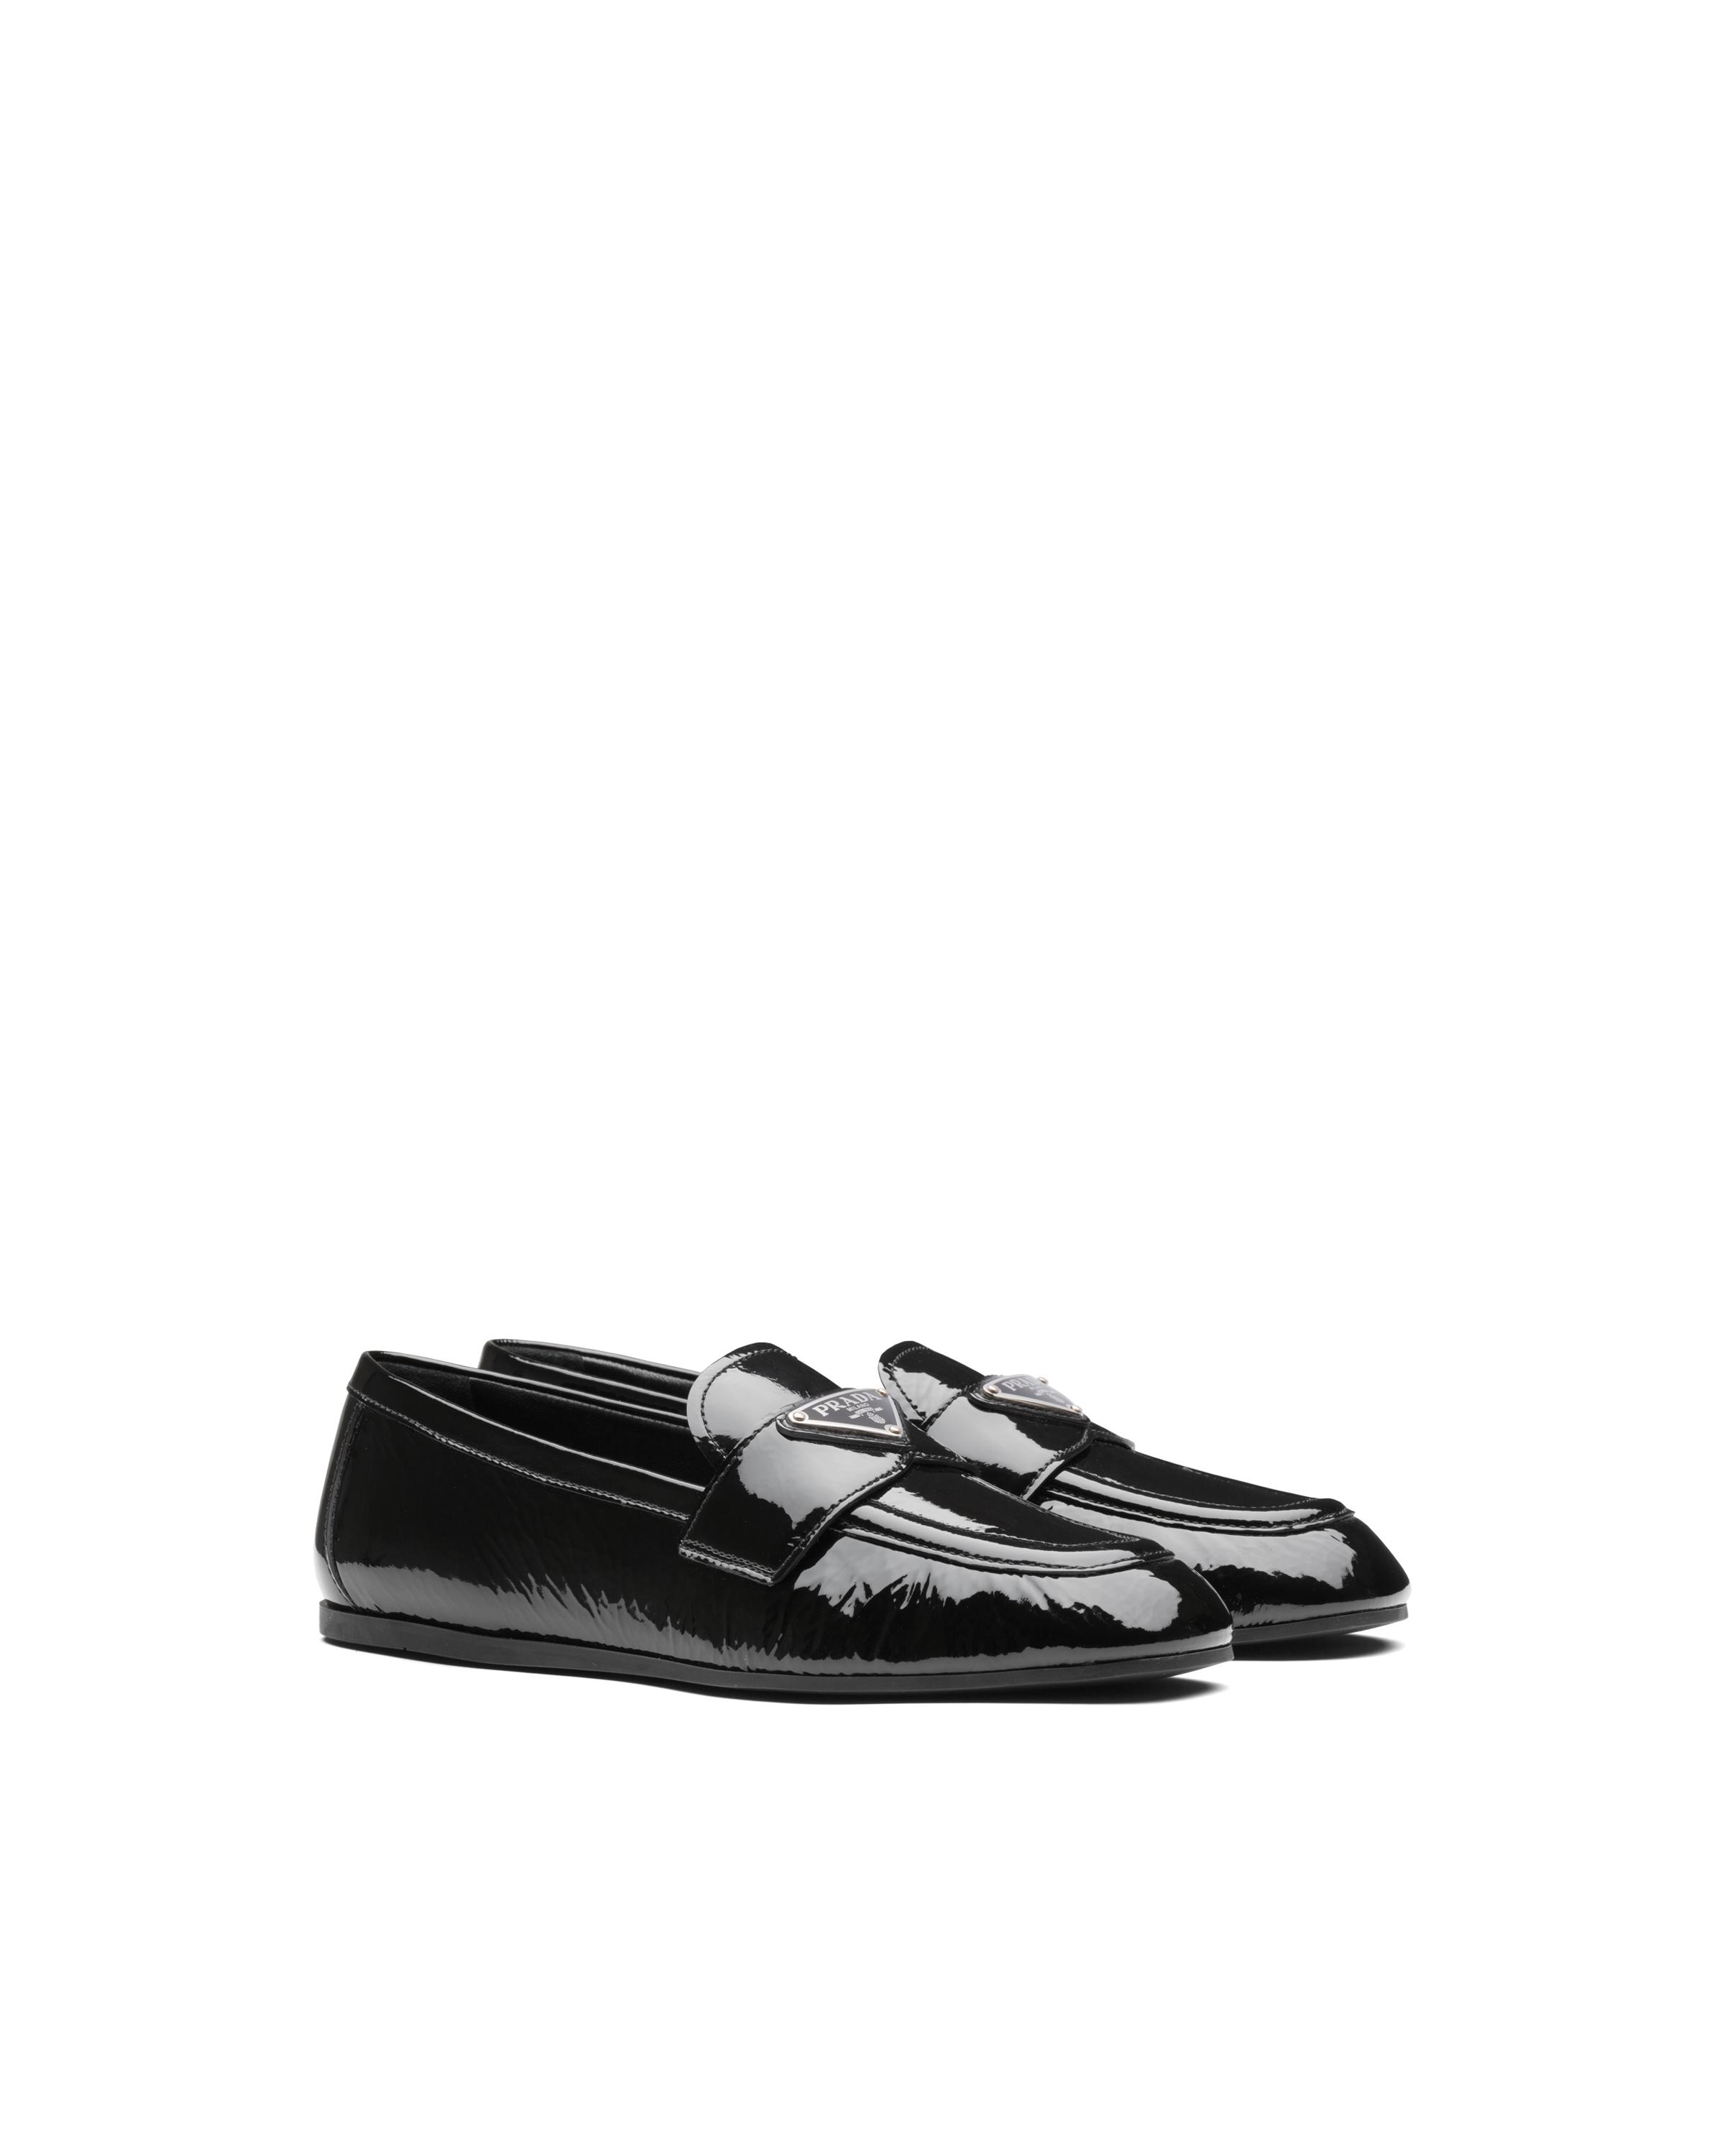 Patent Leather Loafers Women Black Size 36 4